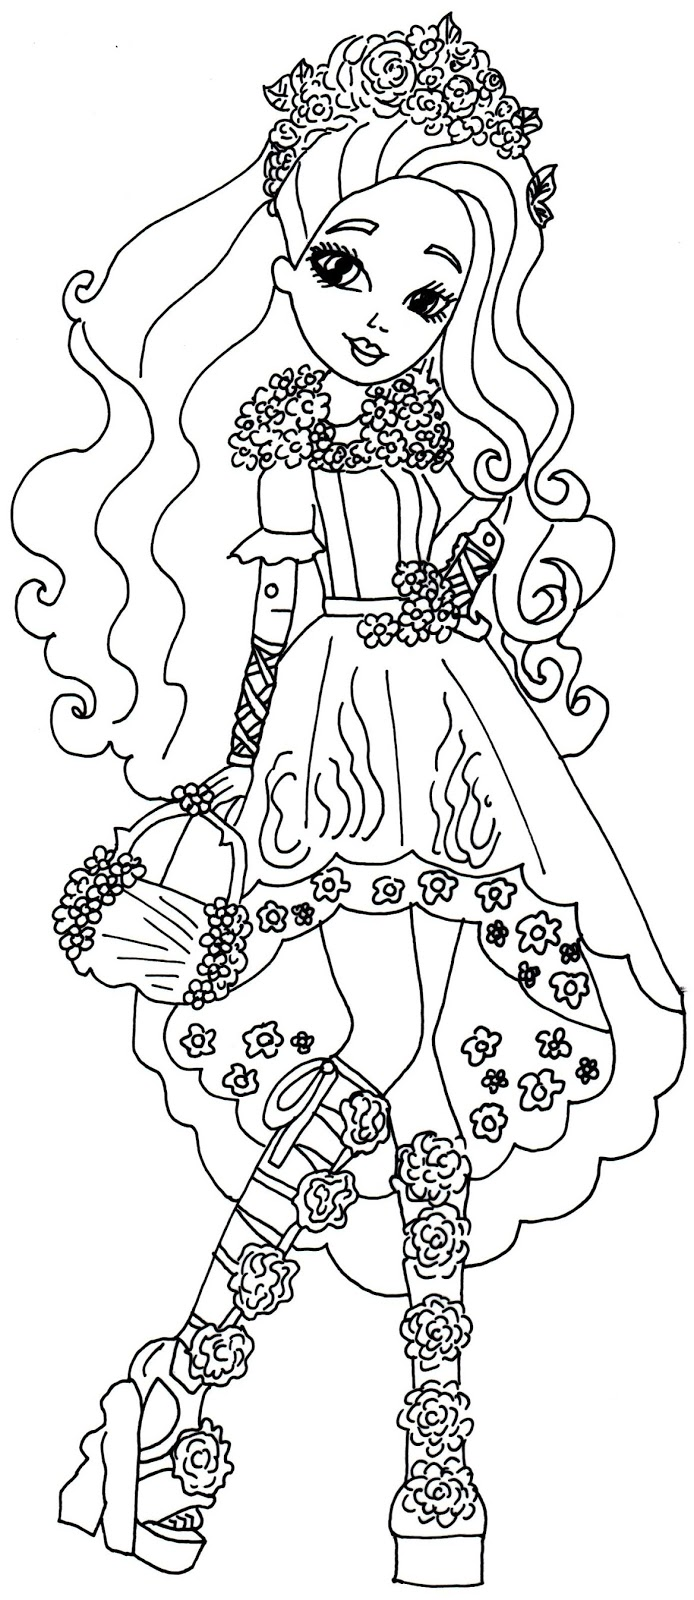 694x1600 Free Printable Ever After High Coloring Pages Cedar Wood Spring